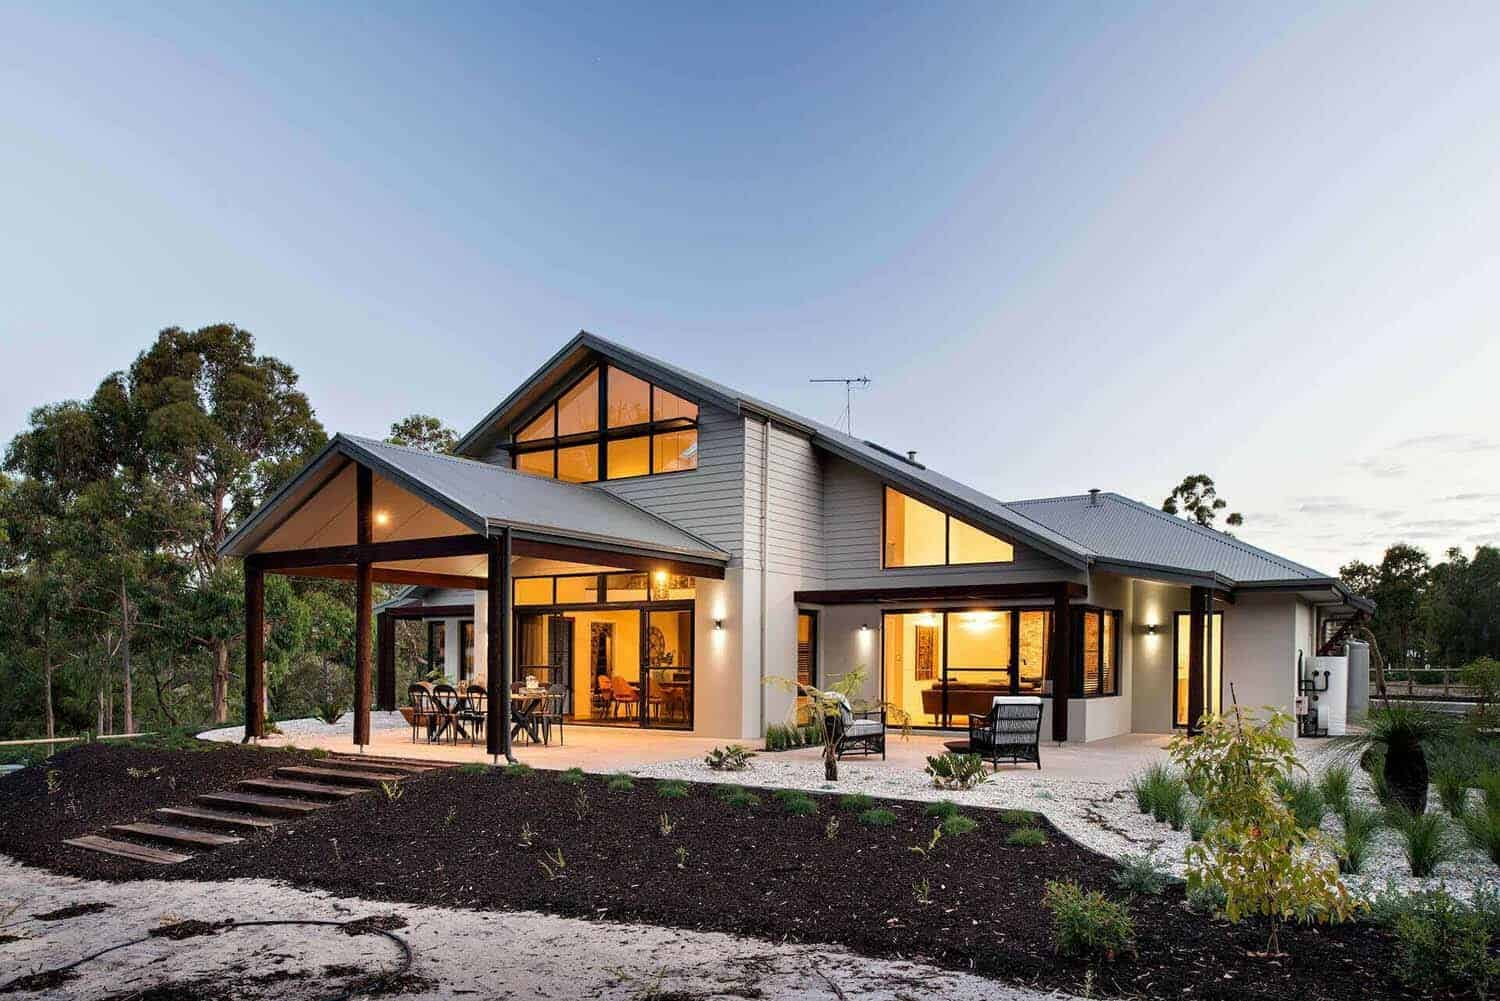 Contemporary Home Design-The Rural Building Company-27-1 Kindesign